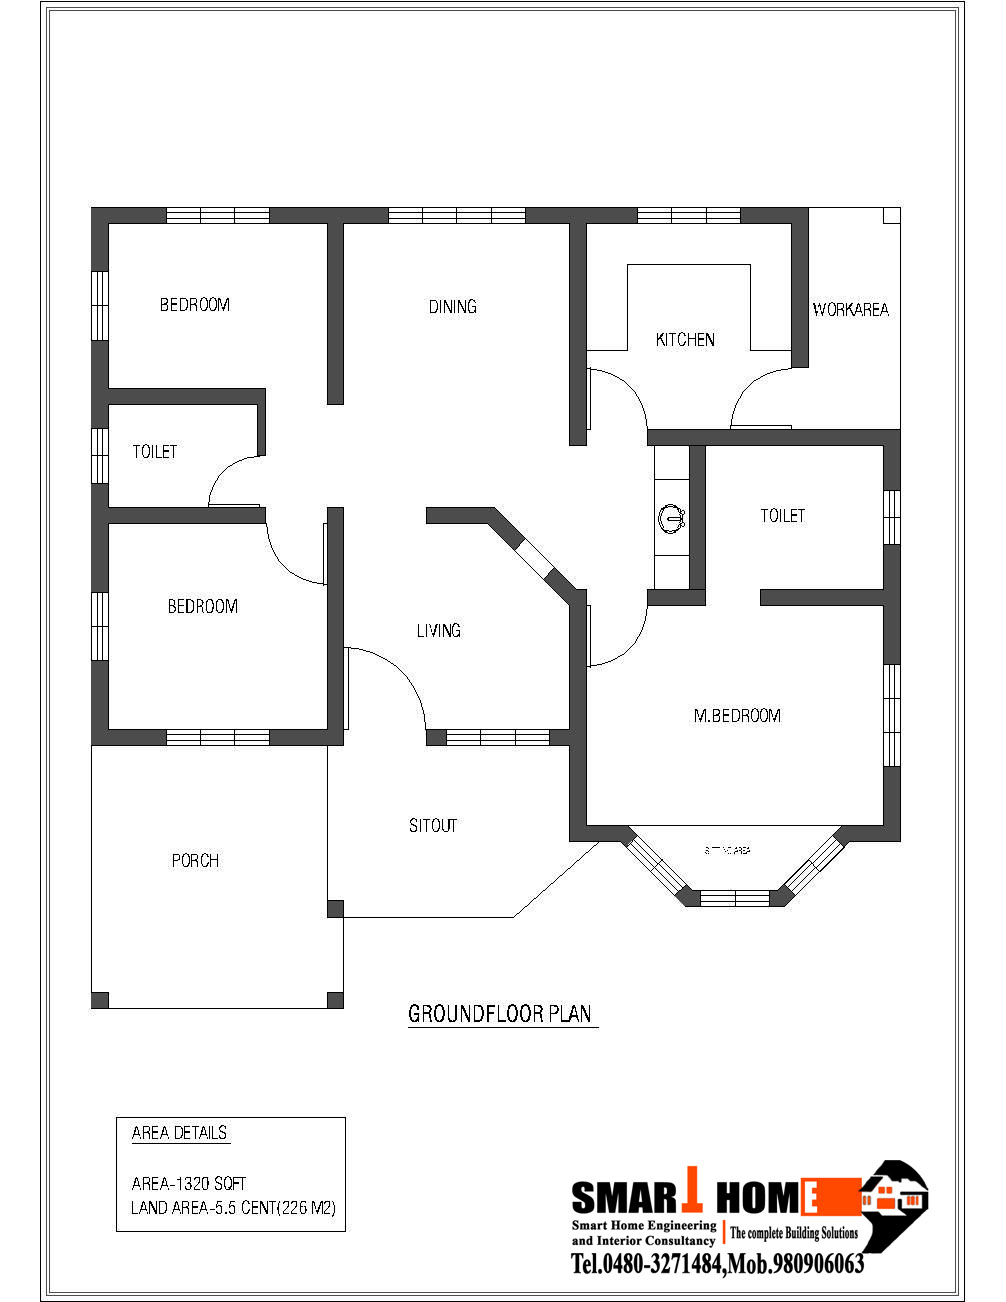 bedroom bath house plans family home plans bedroom house floor plans bedroom house floor plans